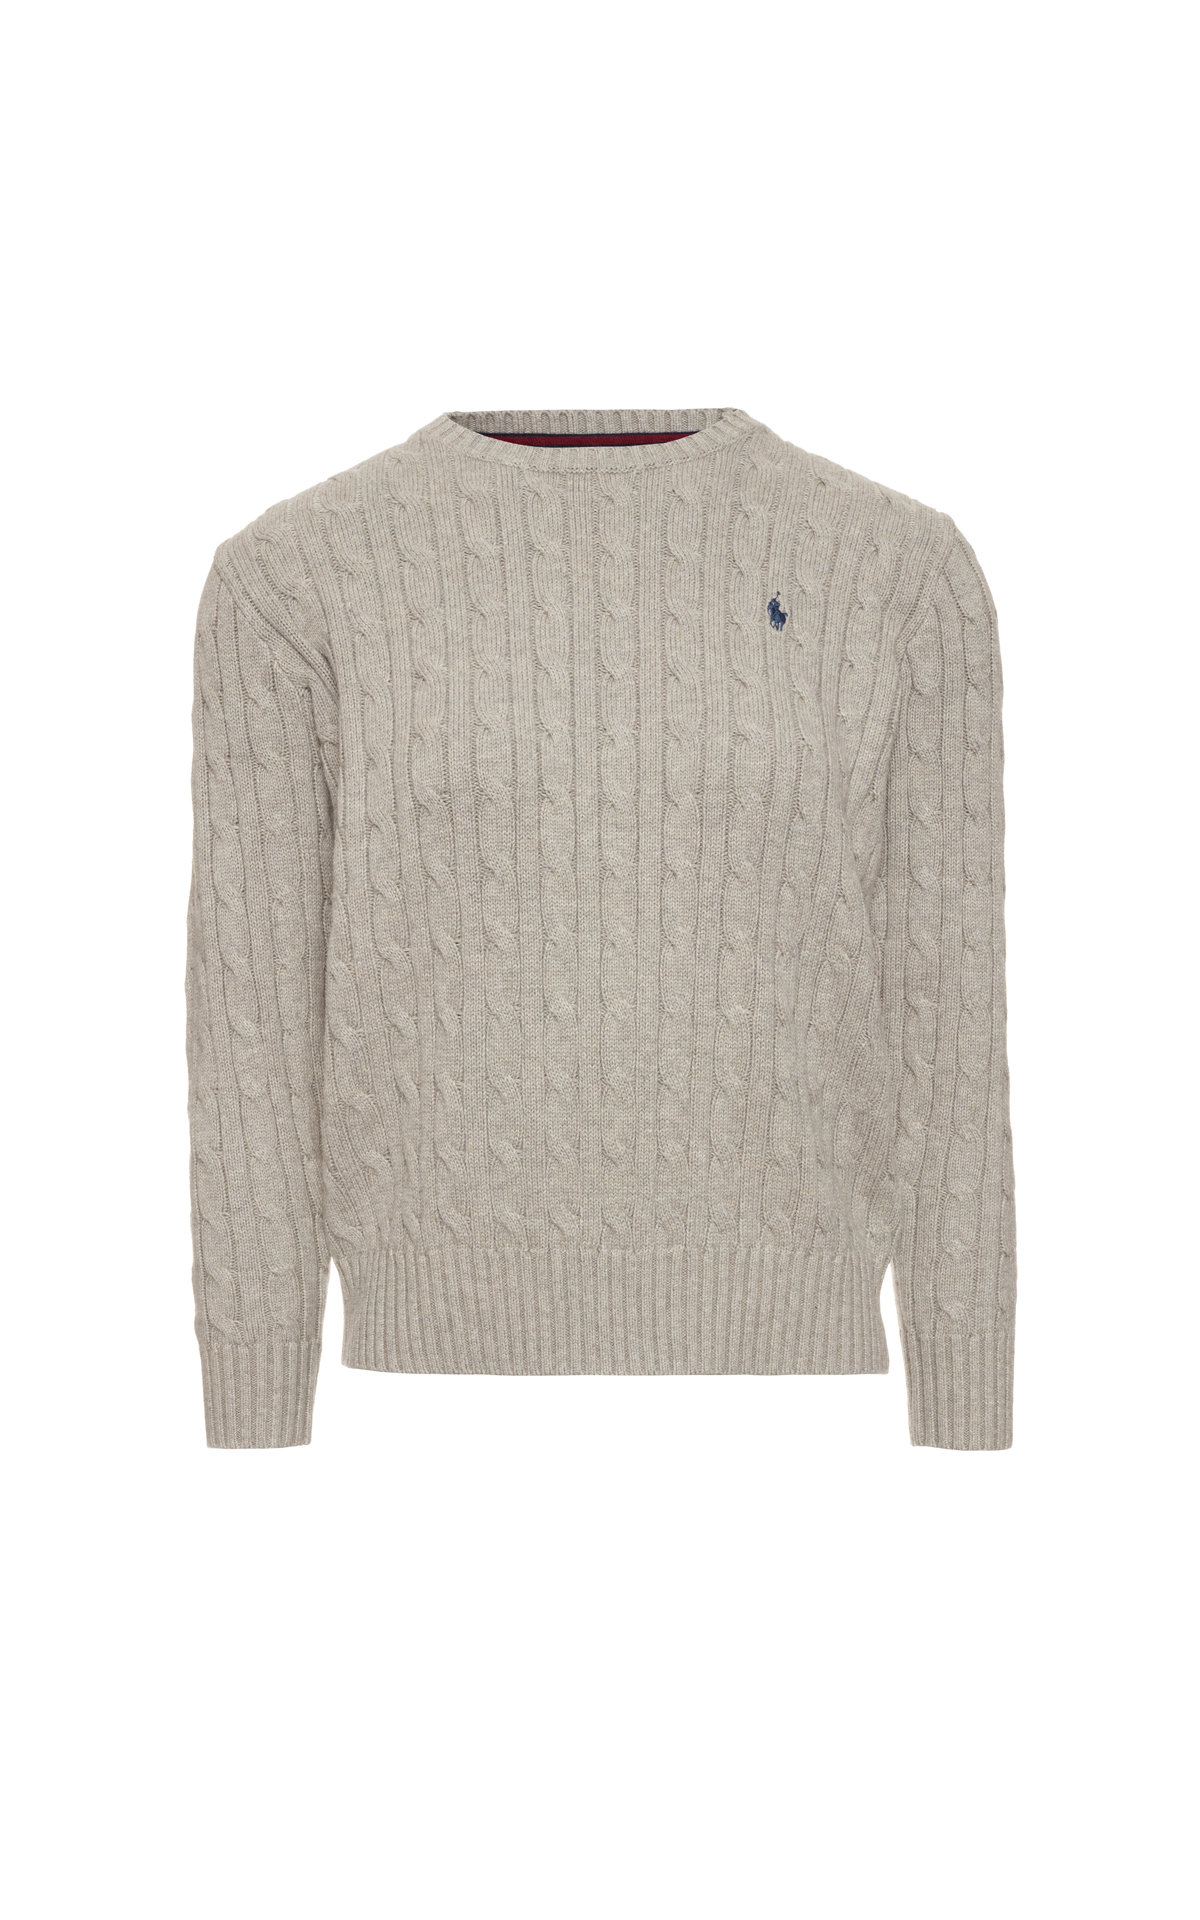 Polo Ralph Lauren Children's Cotton Cable Crew Neck Sweater at The Bicester Village Shopping Collection